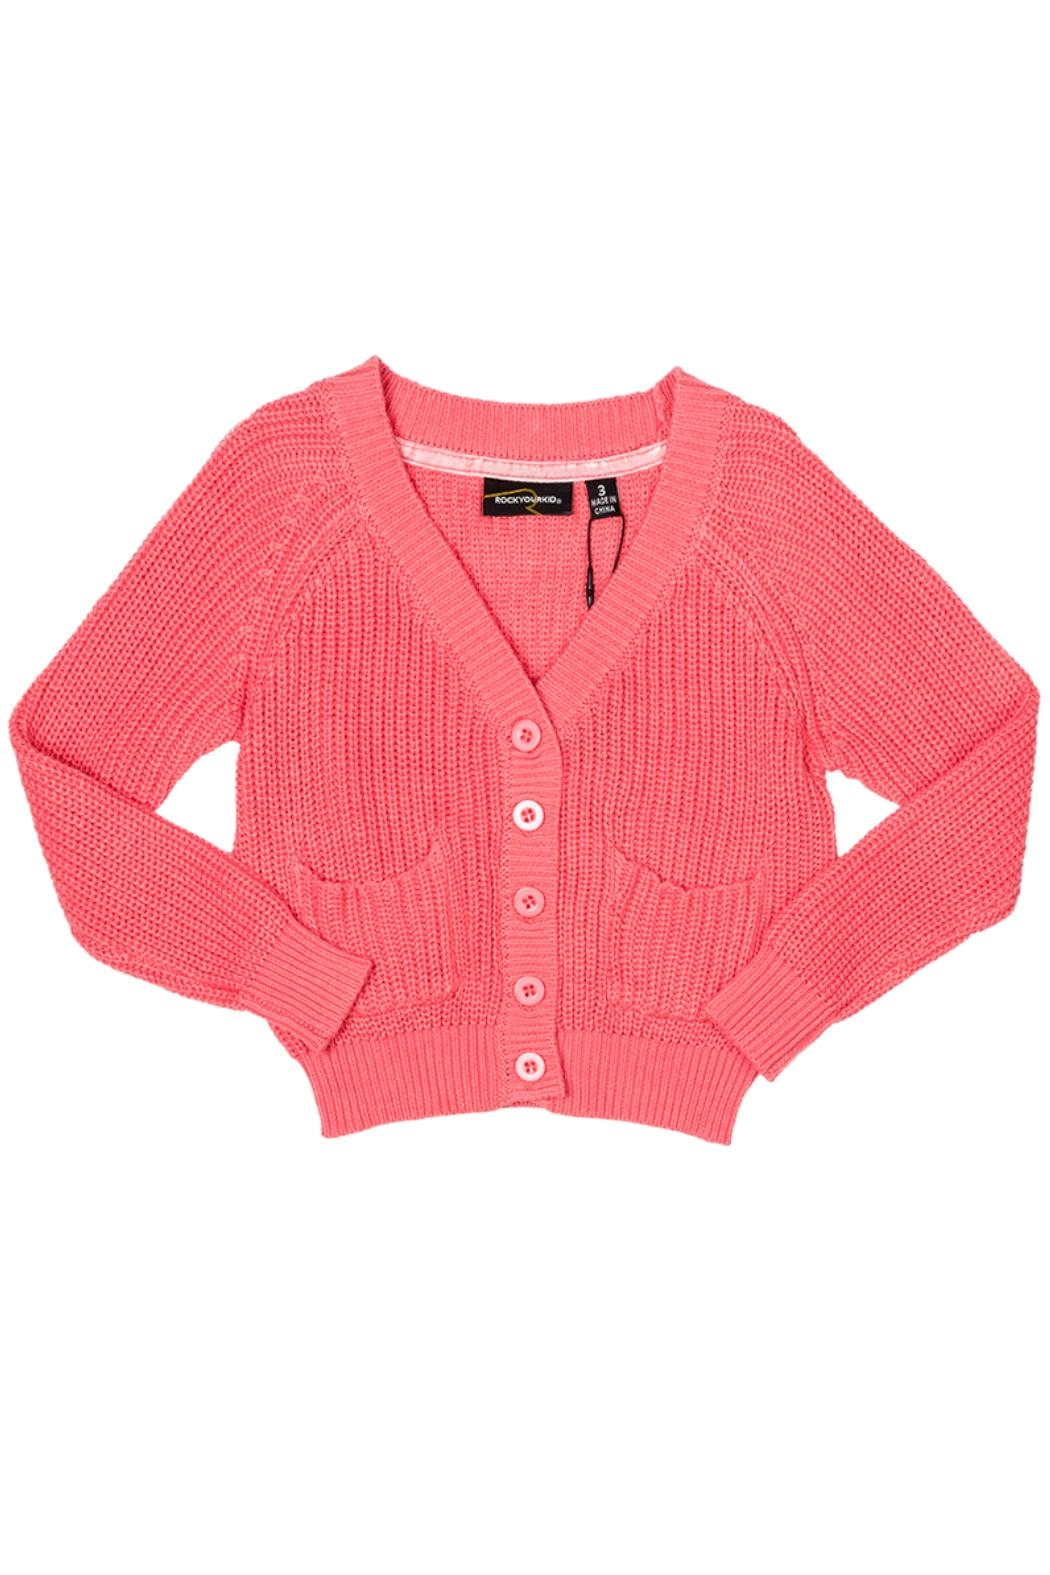 Rock Your Baby Peach Baby Cardigan - Main Image